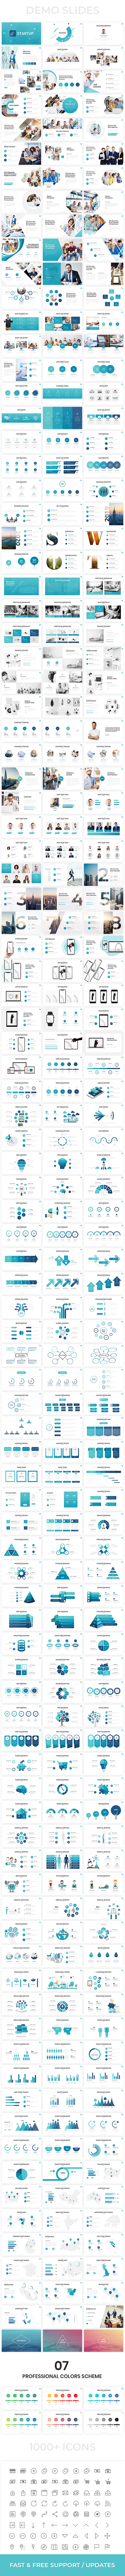 Simple & Modern Business Powerpoint Template - 1